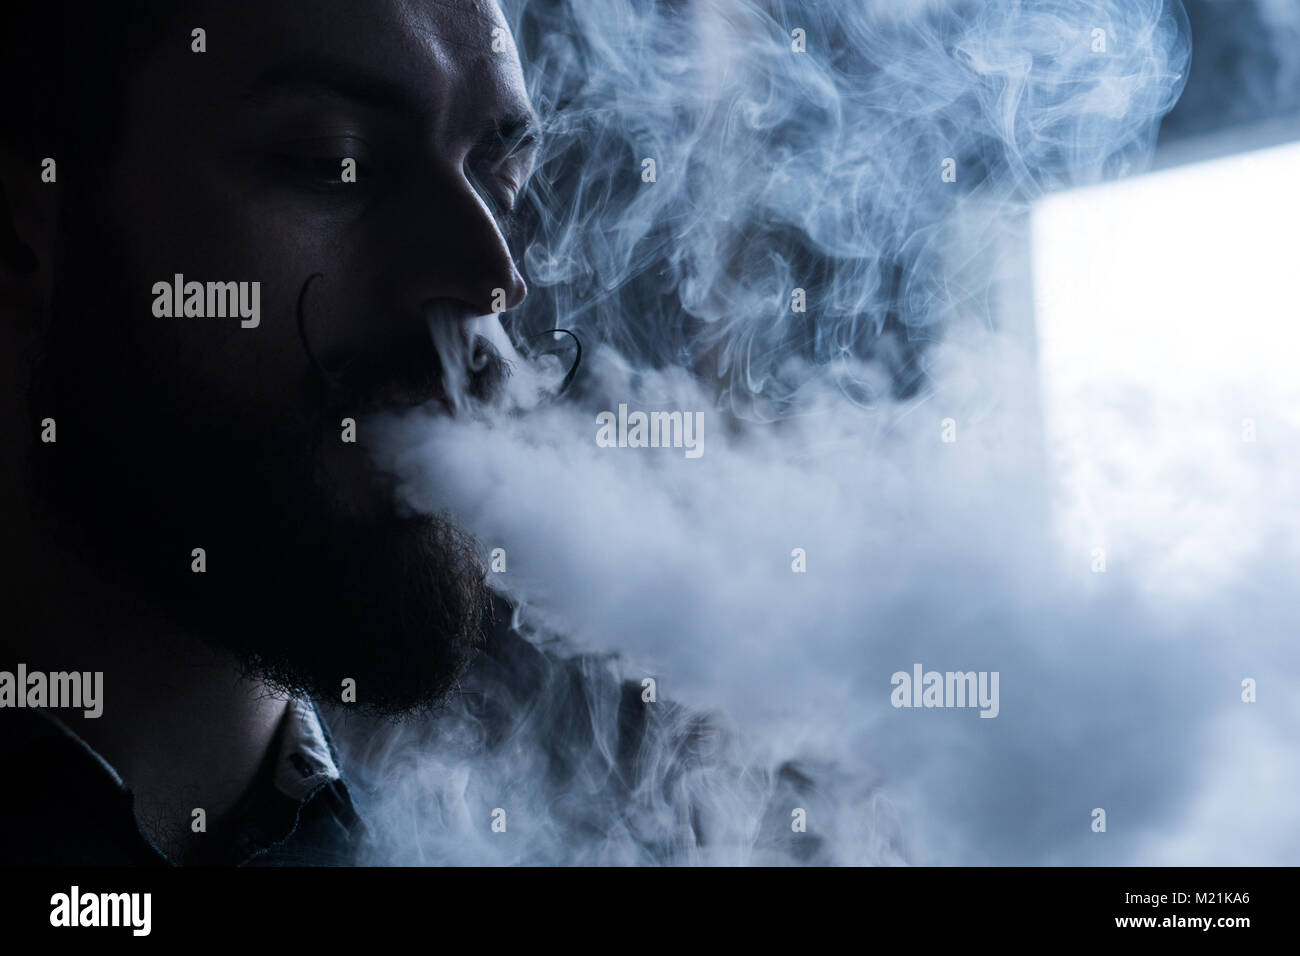 Man with Beard and Mustages Vaping an Electronic Cigarette. Vaper Hipster Smoke Vaporizer and Exhals Smoke Flow. - Stock Image